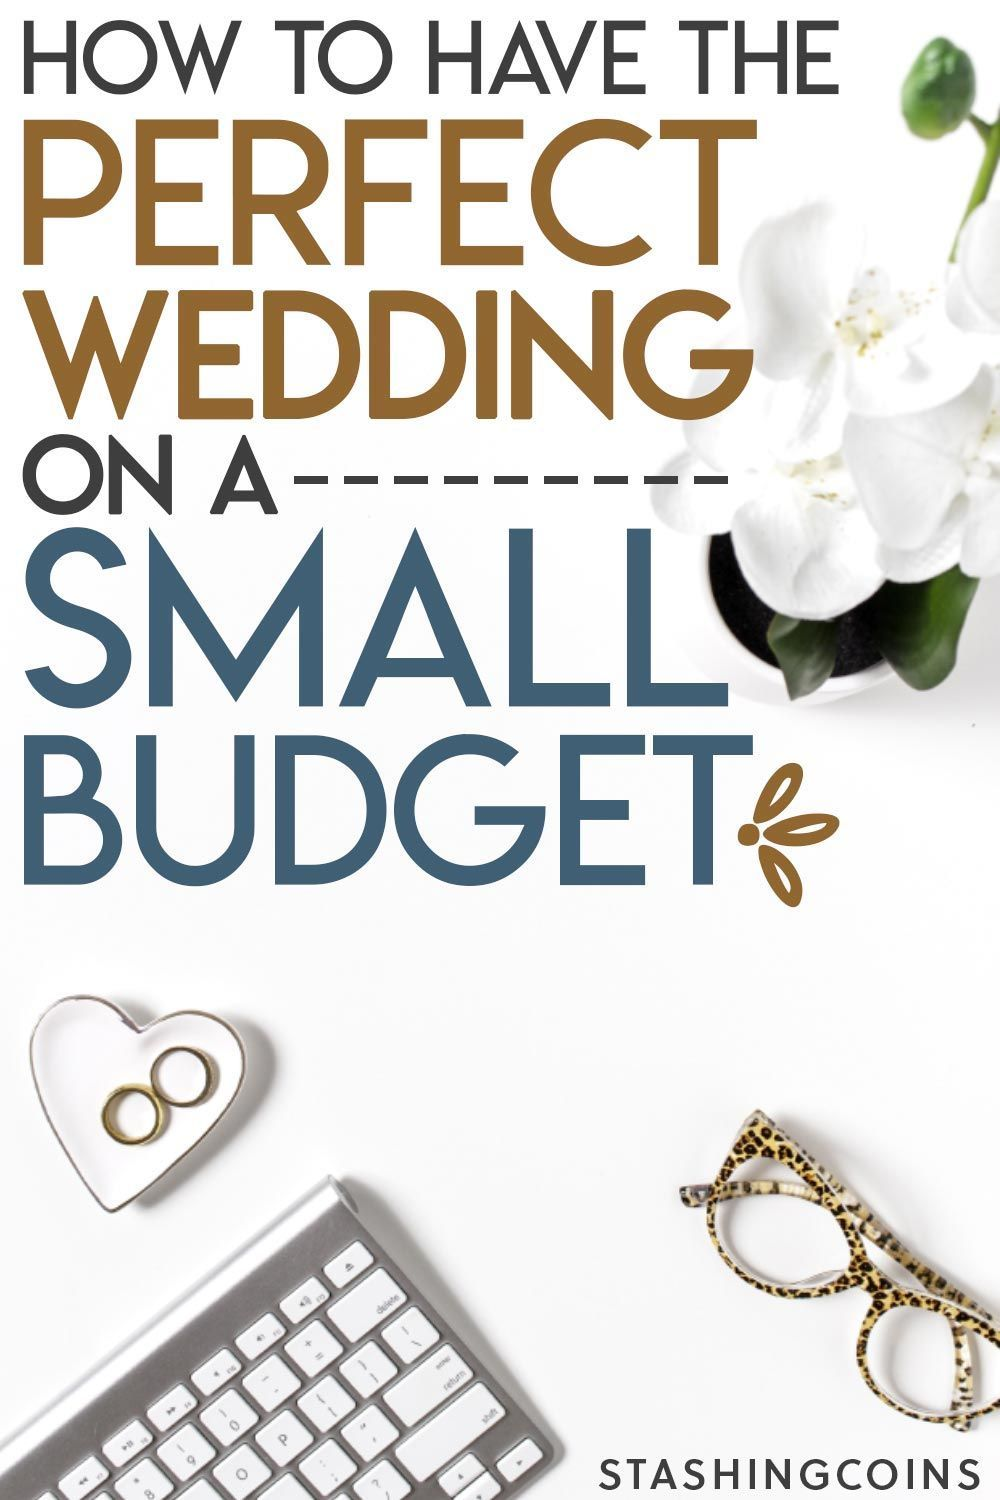 Wedding On A Small Budget Here Is How To In 2020 Wedding Planning On A Budget Easy Wedding Planning Diy Wedding On A Budget